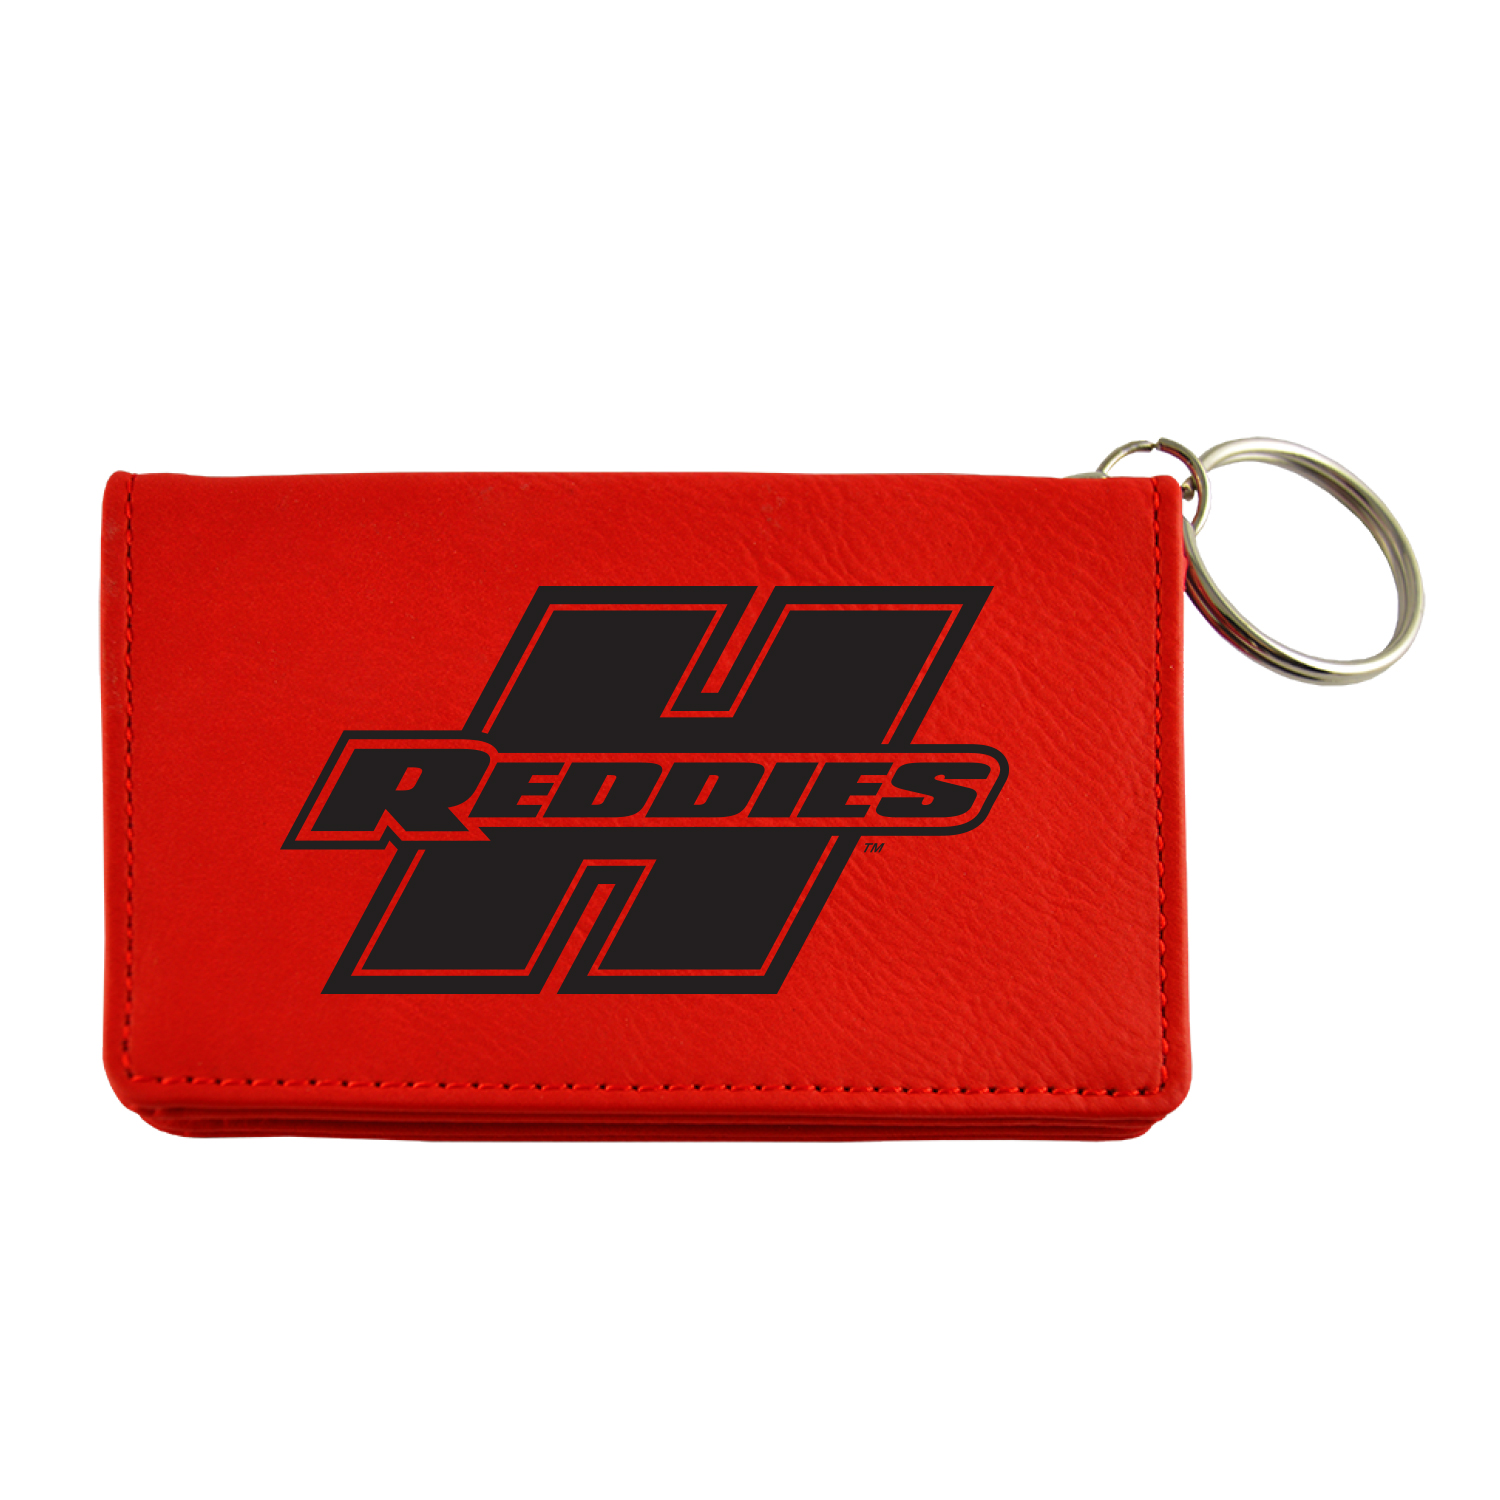 Henderson Reddies Velour ID Holder